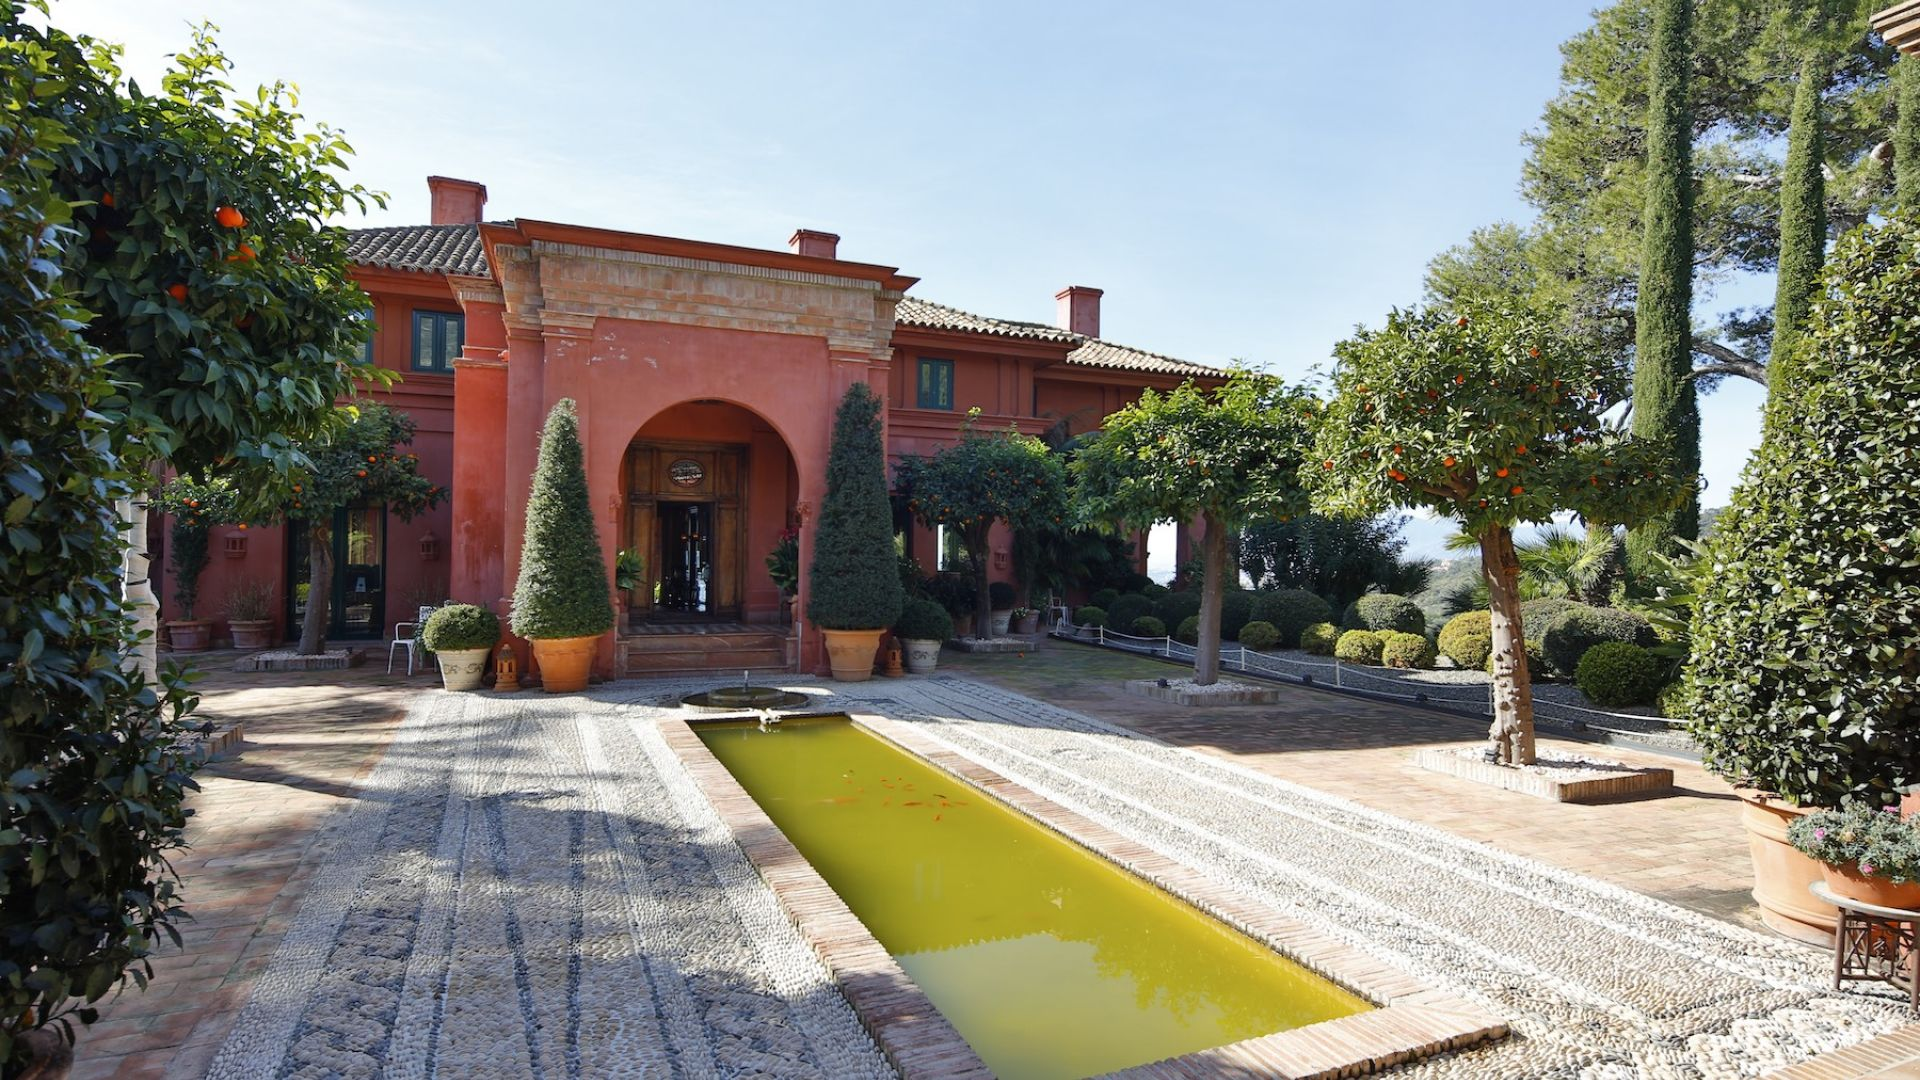 Single Family Home for Sale at Magnificent residence located in the hills above Marbella Marbella, Costa Del Sol, 29600 Spain